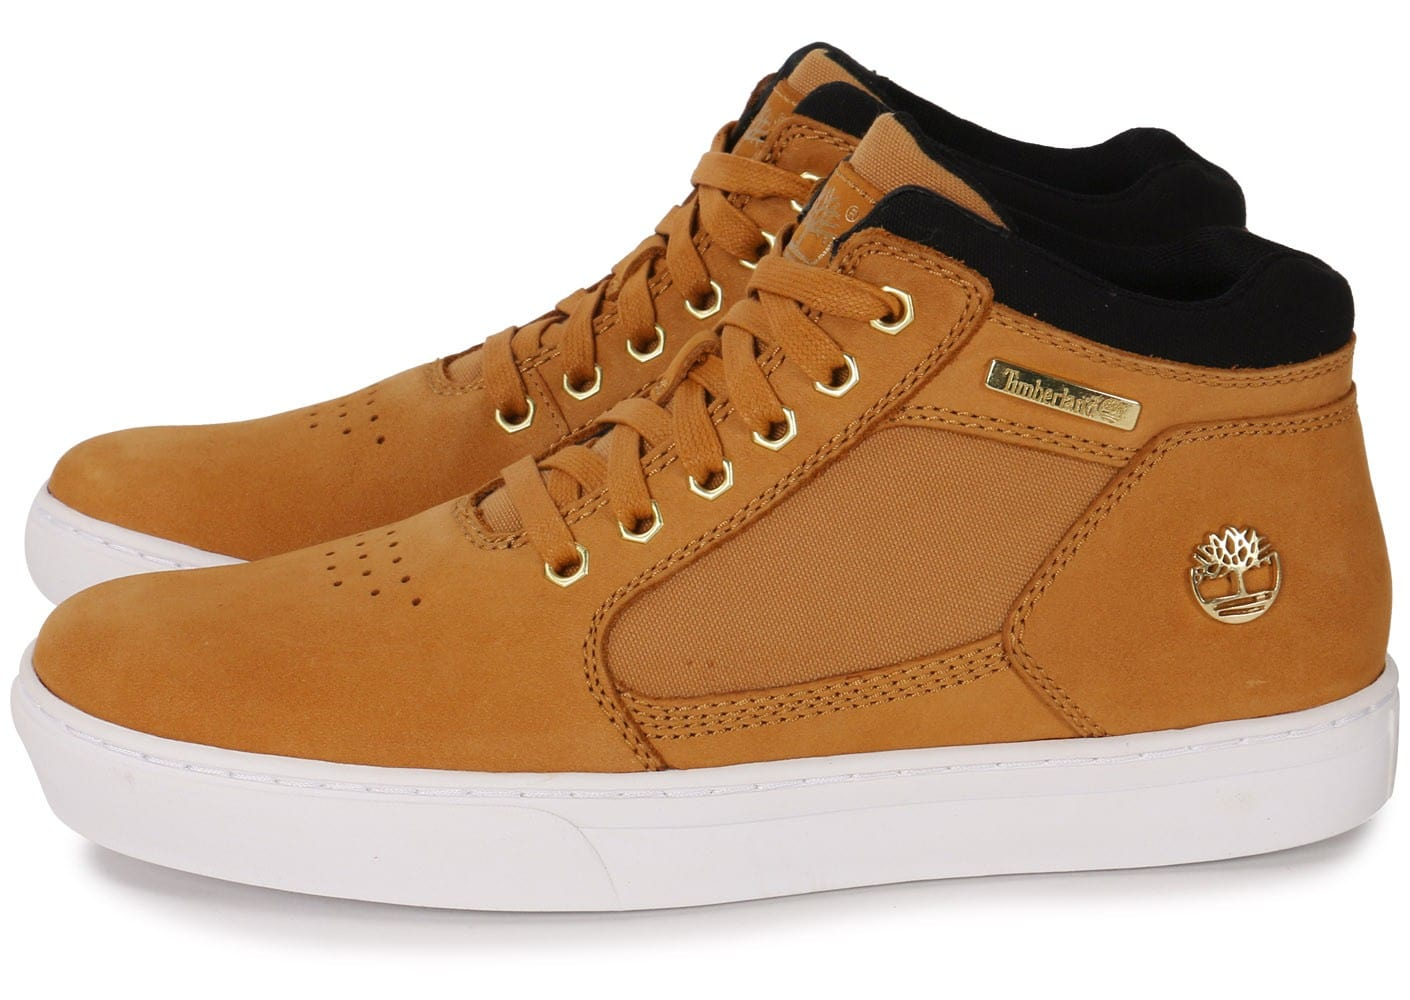 timberland cupsole 2 0 beige chaussures homme chausport. Black Bedroom Furniture Sets. Home Design Ideas